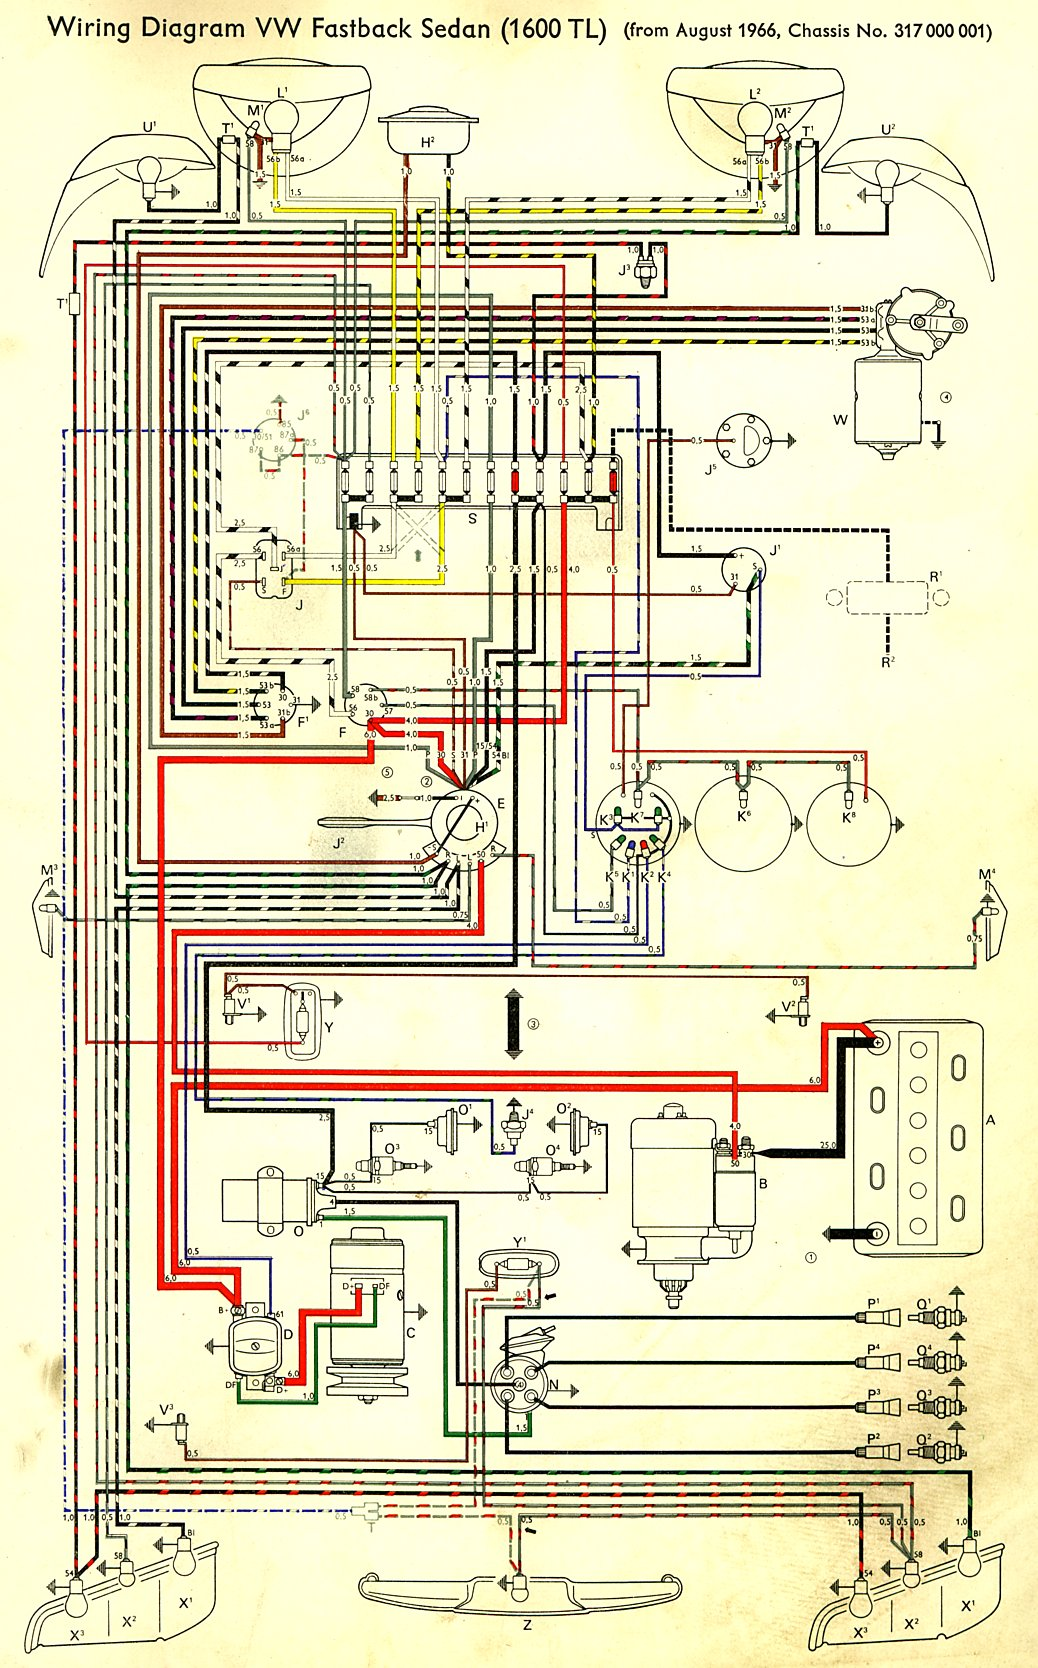 type3_1600TL_67 european wiring diagram hyundai sonata wiring diagram \u2022 free vw wiring diagram symbols at crackthecode.co